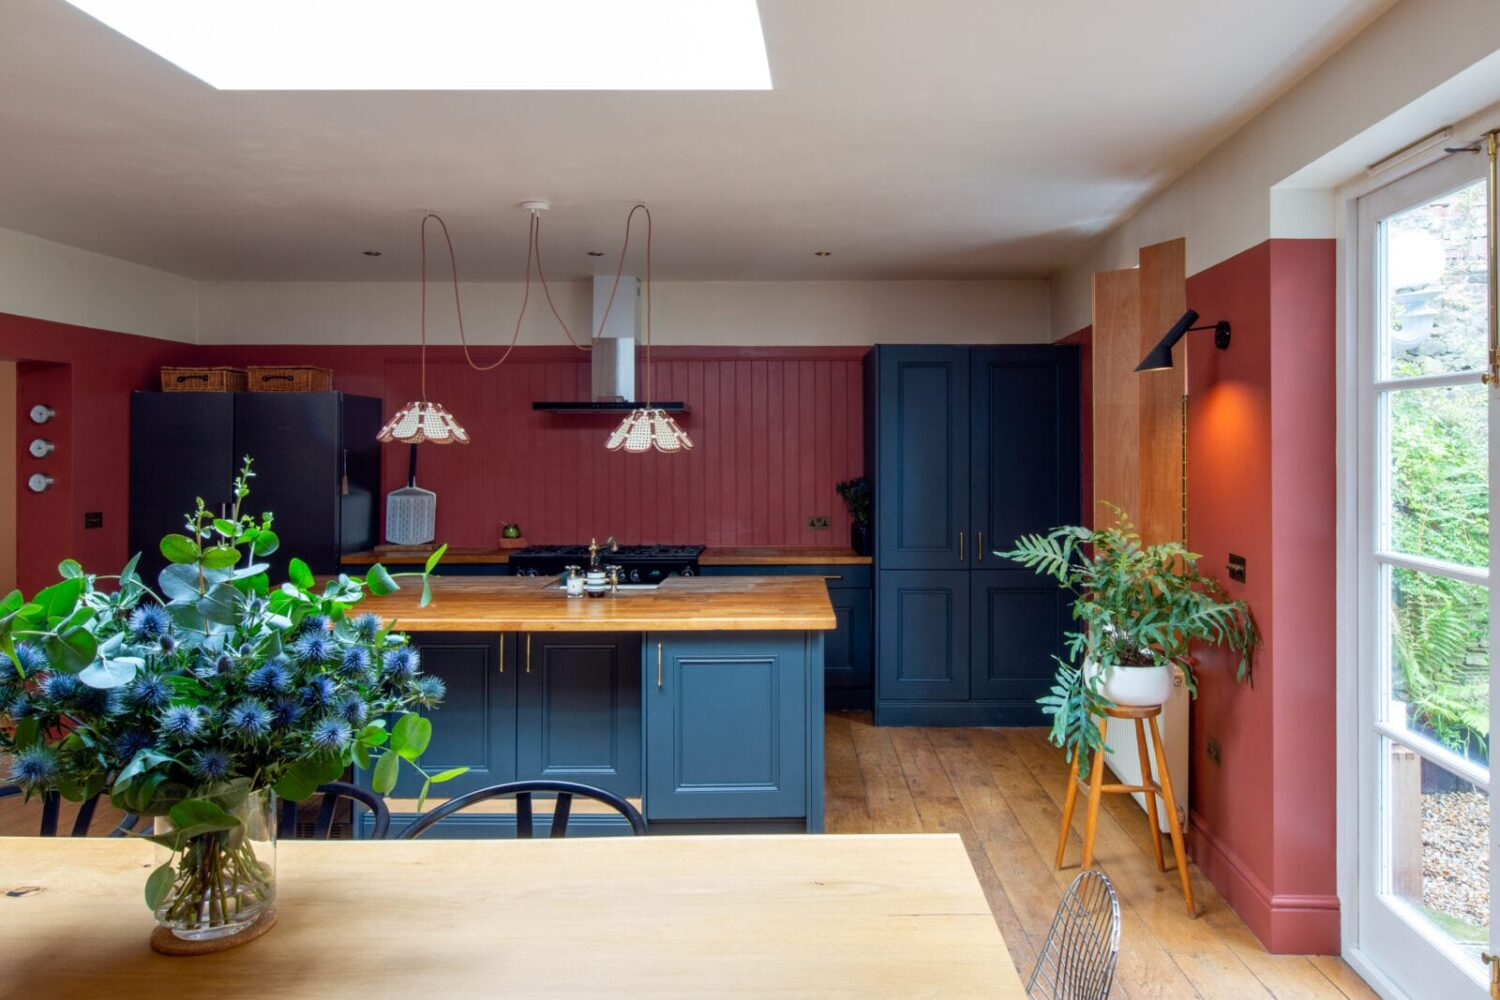 terracotta-kitchen-petrol-blue-cabinets-nordroom